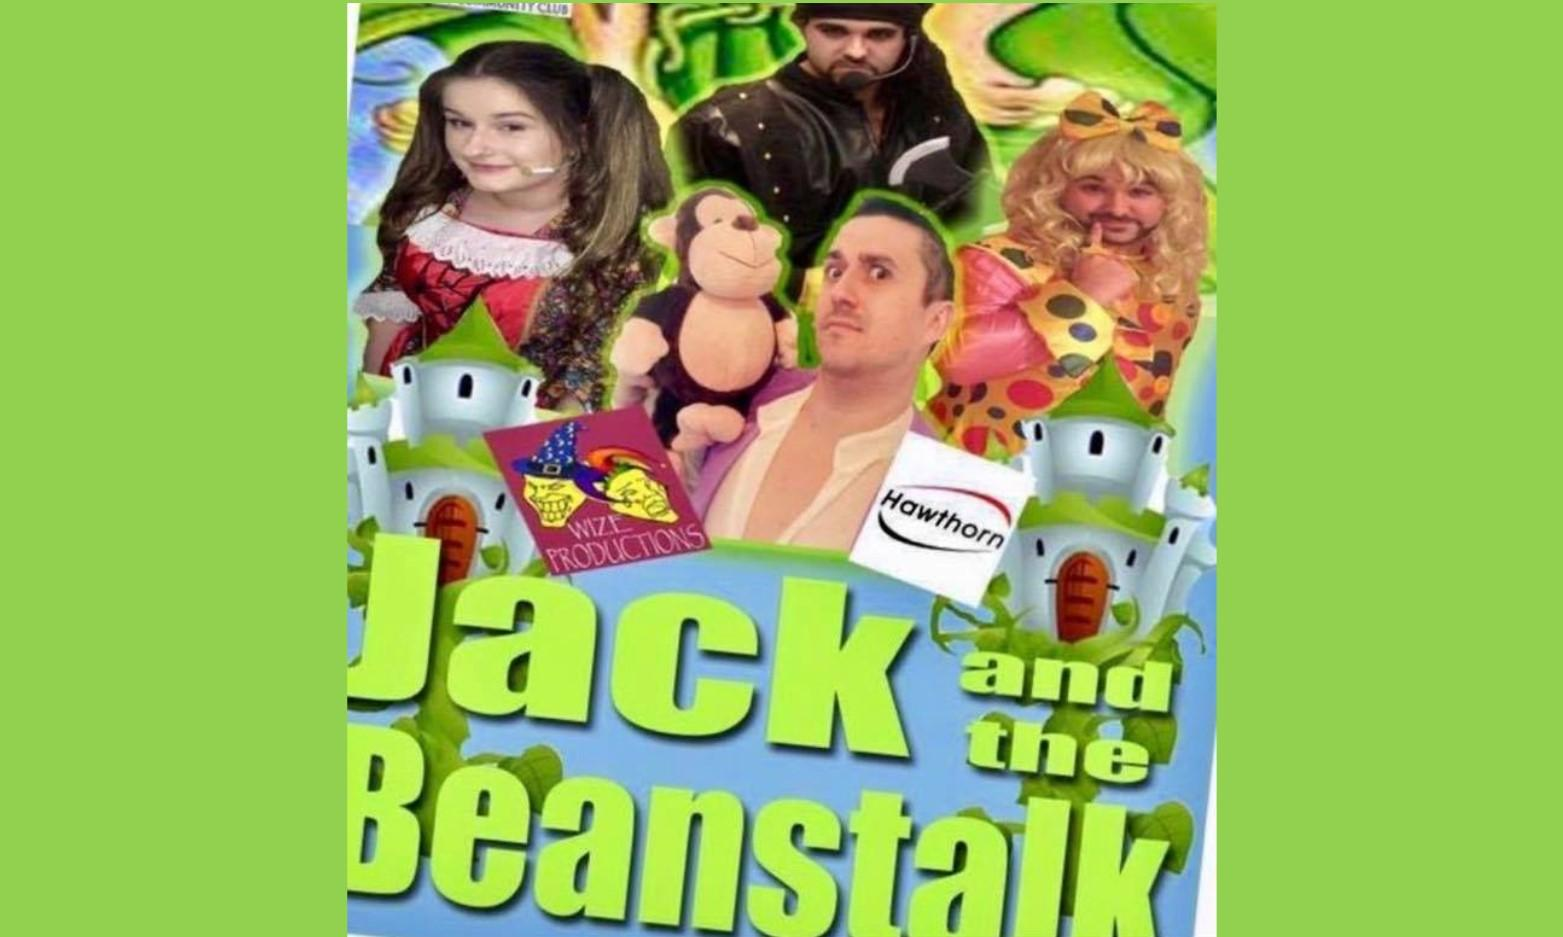 Jack and The Beanstalk Show Plus Family Fun Day